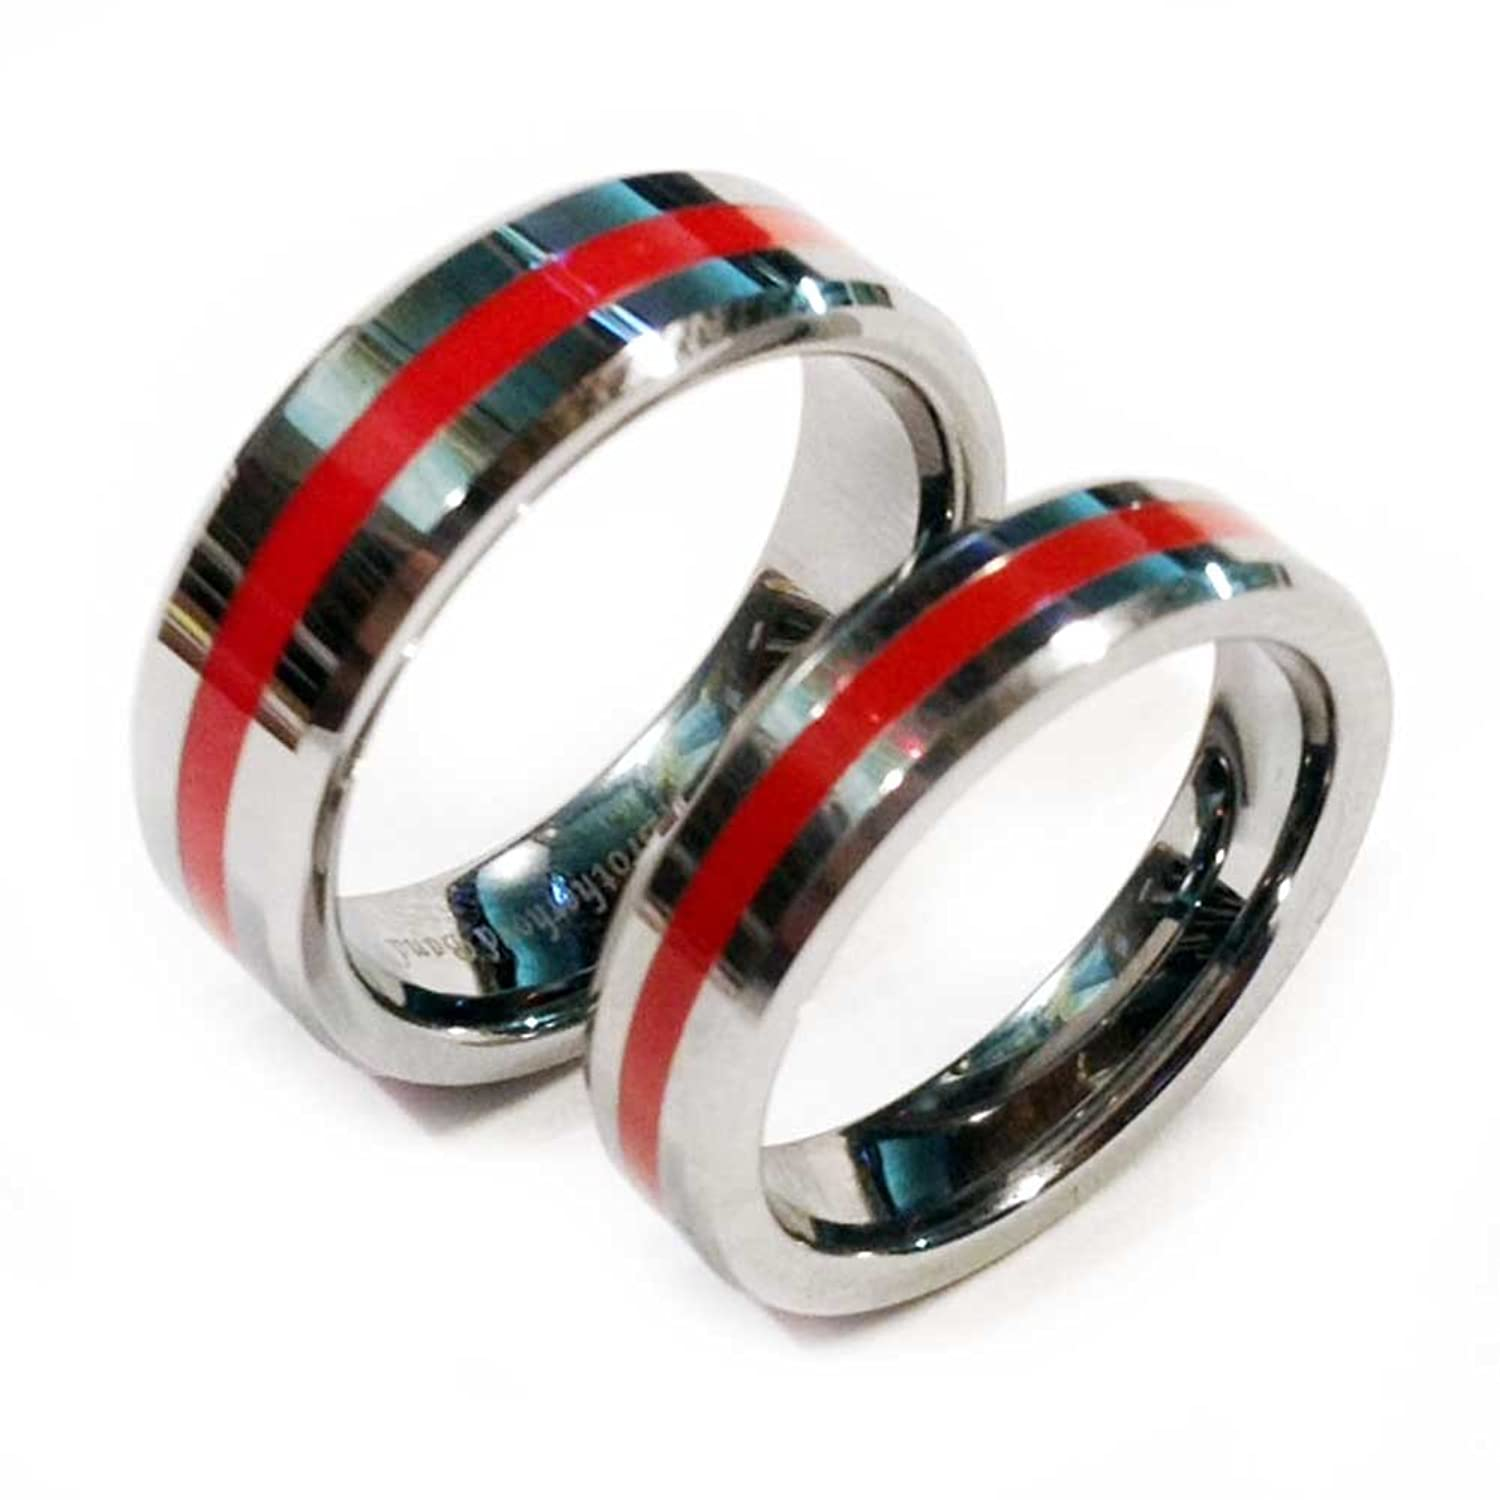 stainless red s men crystal ring casting punk big finger gothic product man real cool mens xiagao for rings stones steel